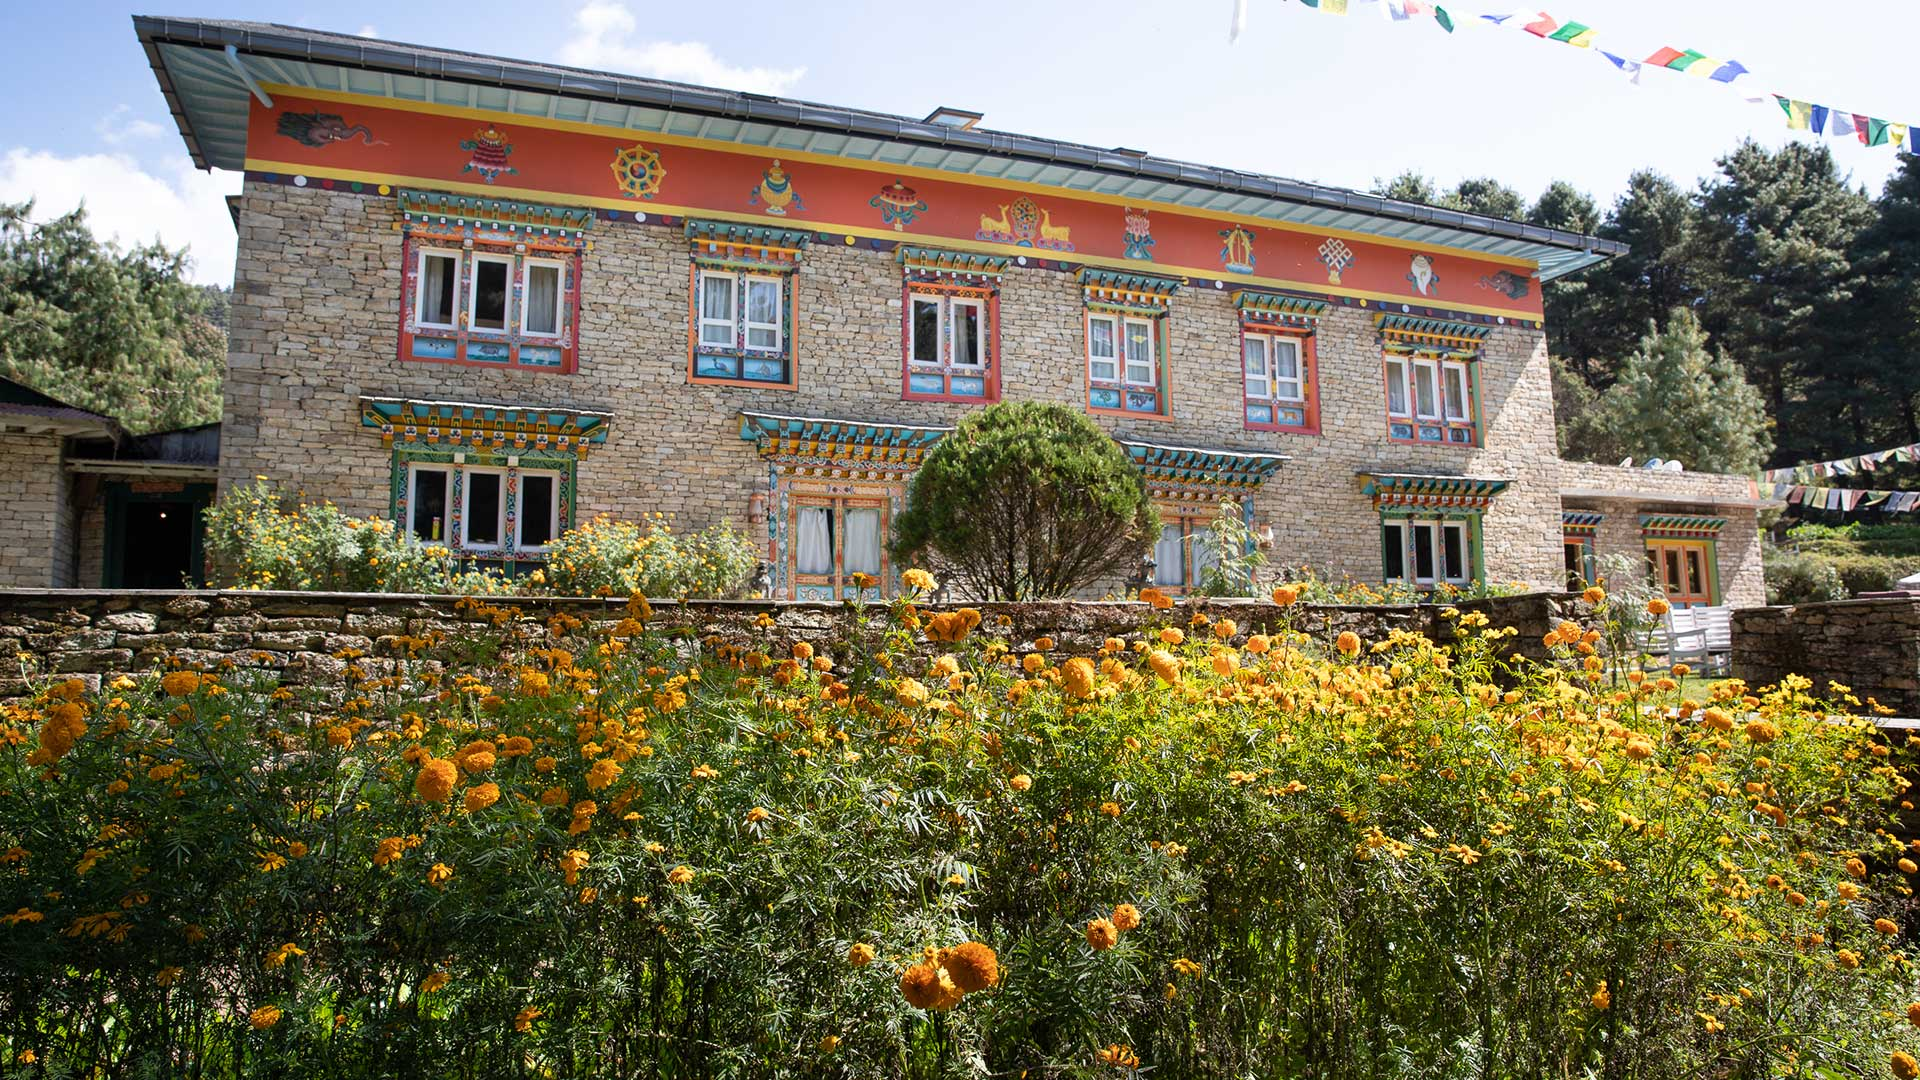 Exterior and flowers of The Happy House